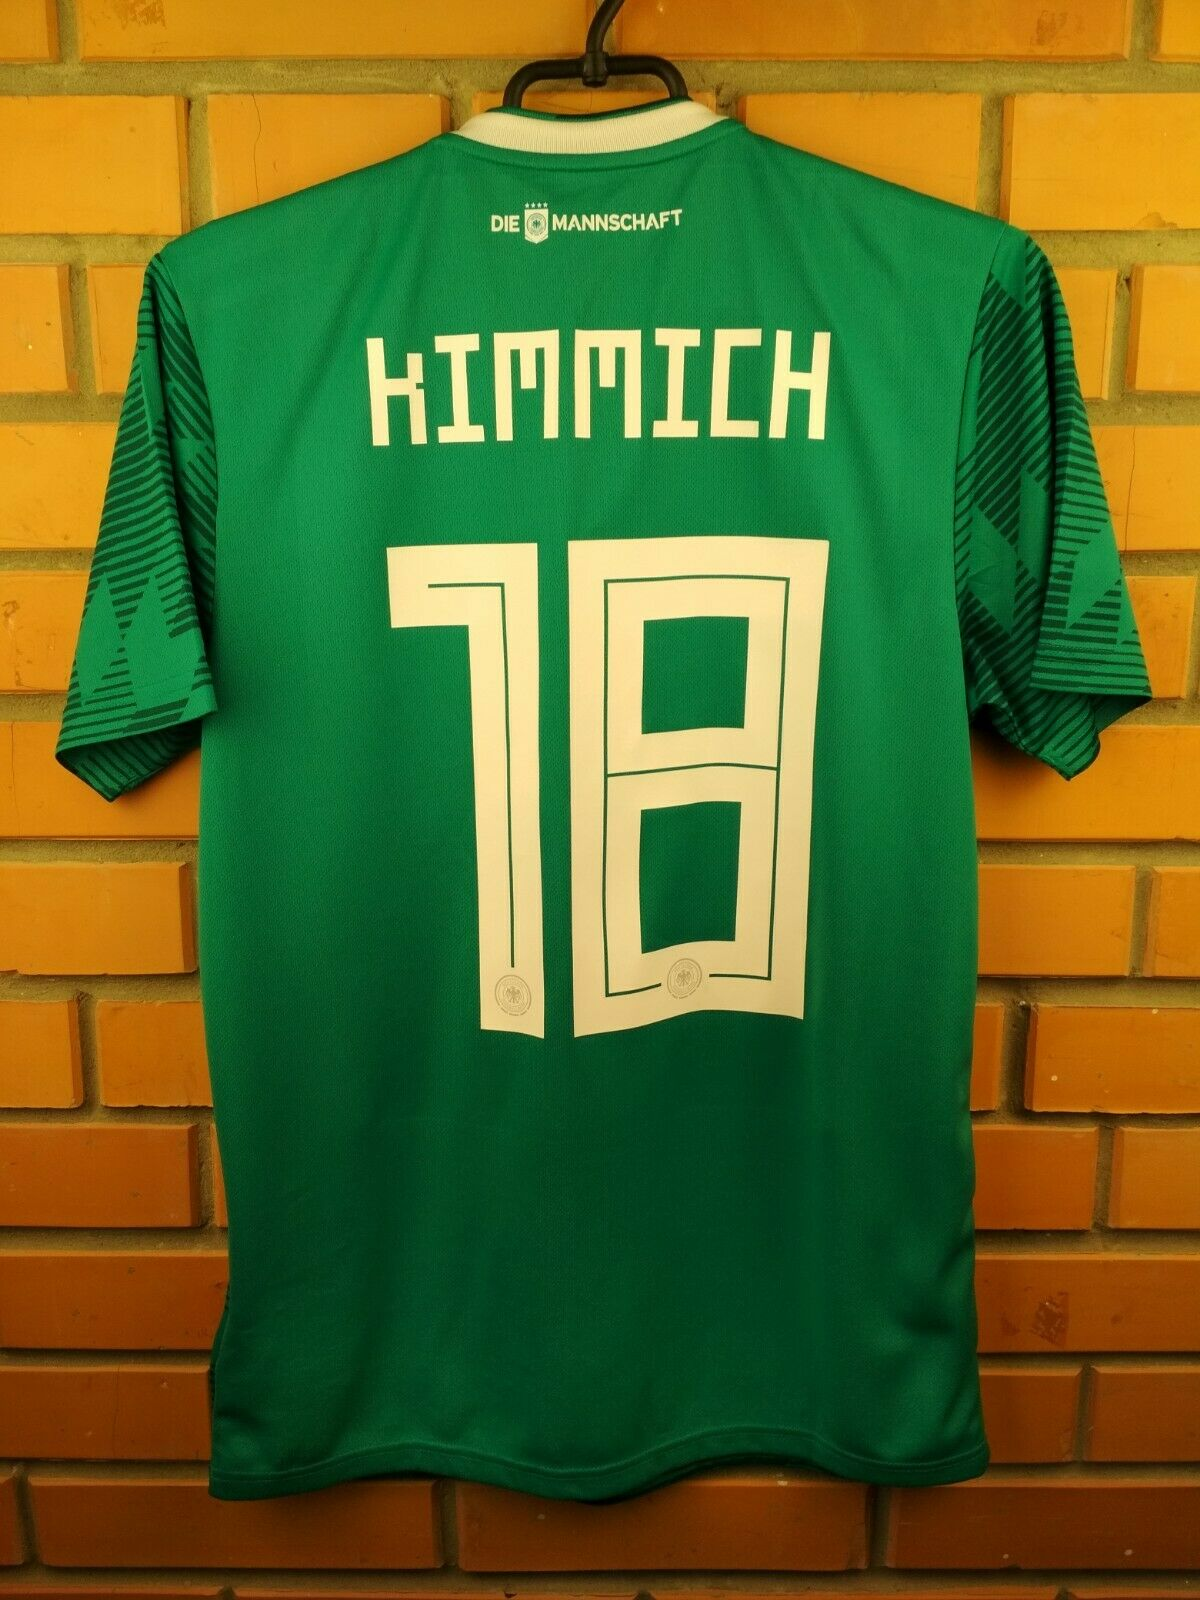 5136dfa6a Kimmich Germany soccer jersey small 2019 away shirt BR3144 football Adidas